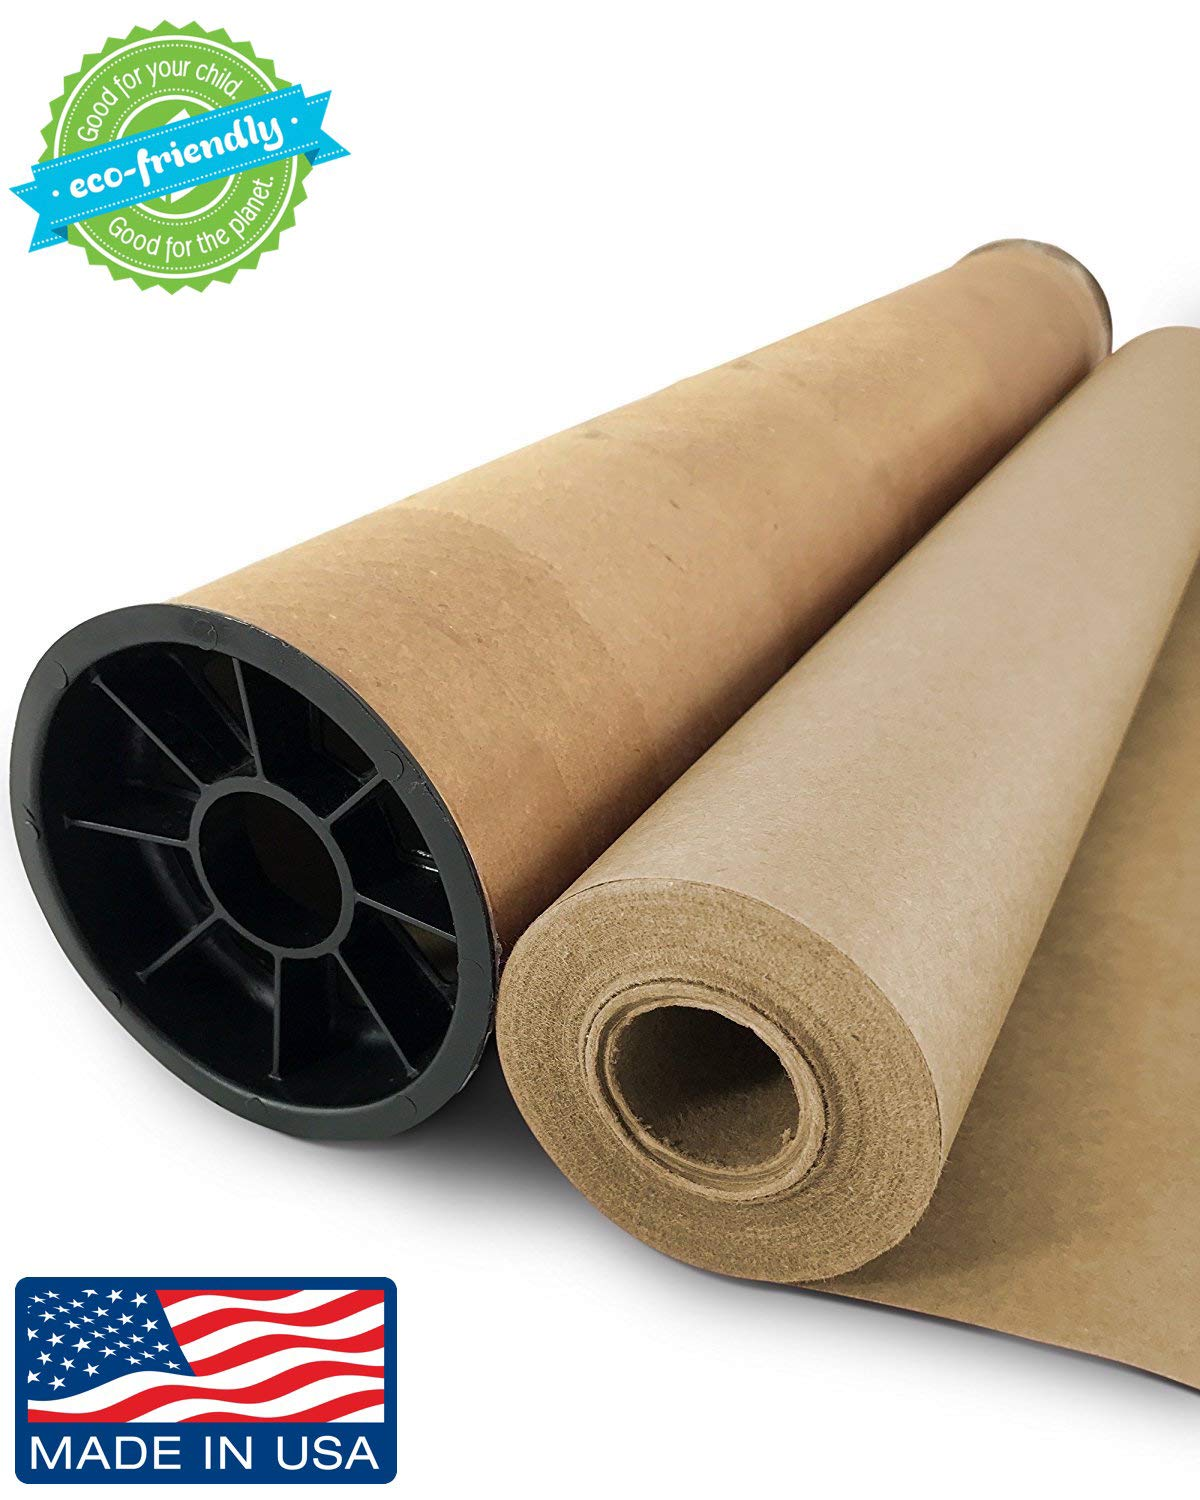 Brown Kraft Paper Jumbo Roll - 30'' x 1200'' (100ft) with Durable Carry Tube | Ideal for Gift Wrapping, Art, Craft, Postal, Packing, Shipping, Floor Covering, Dunnage, Parcel, Table Runner | Made in USA